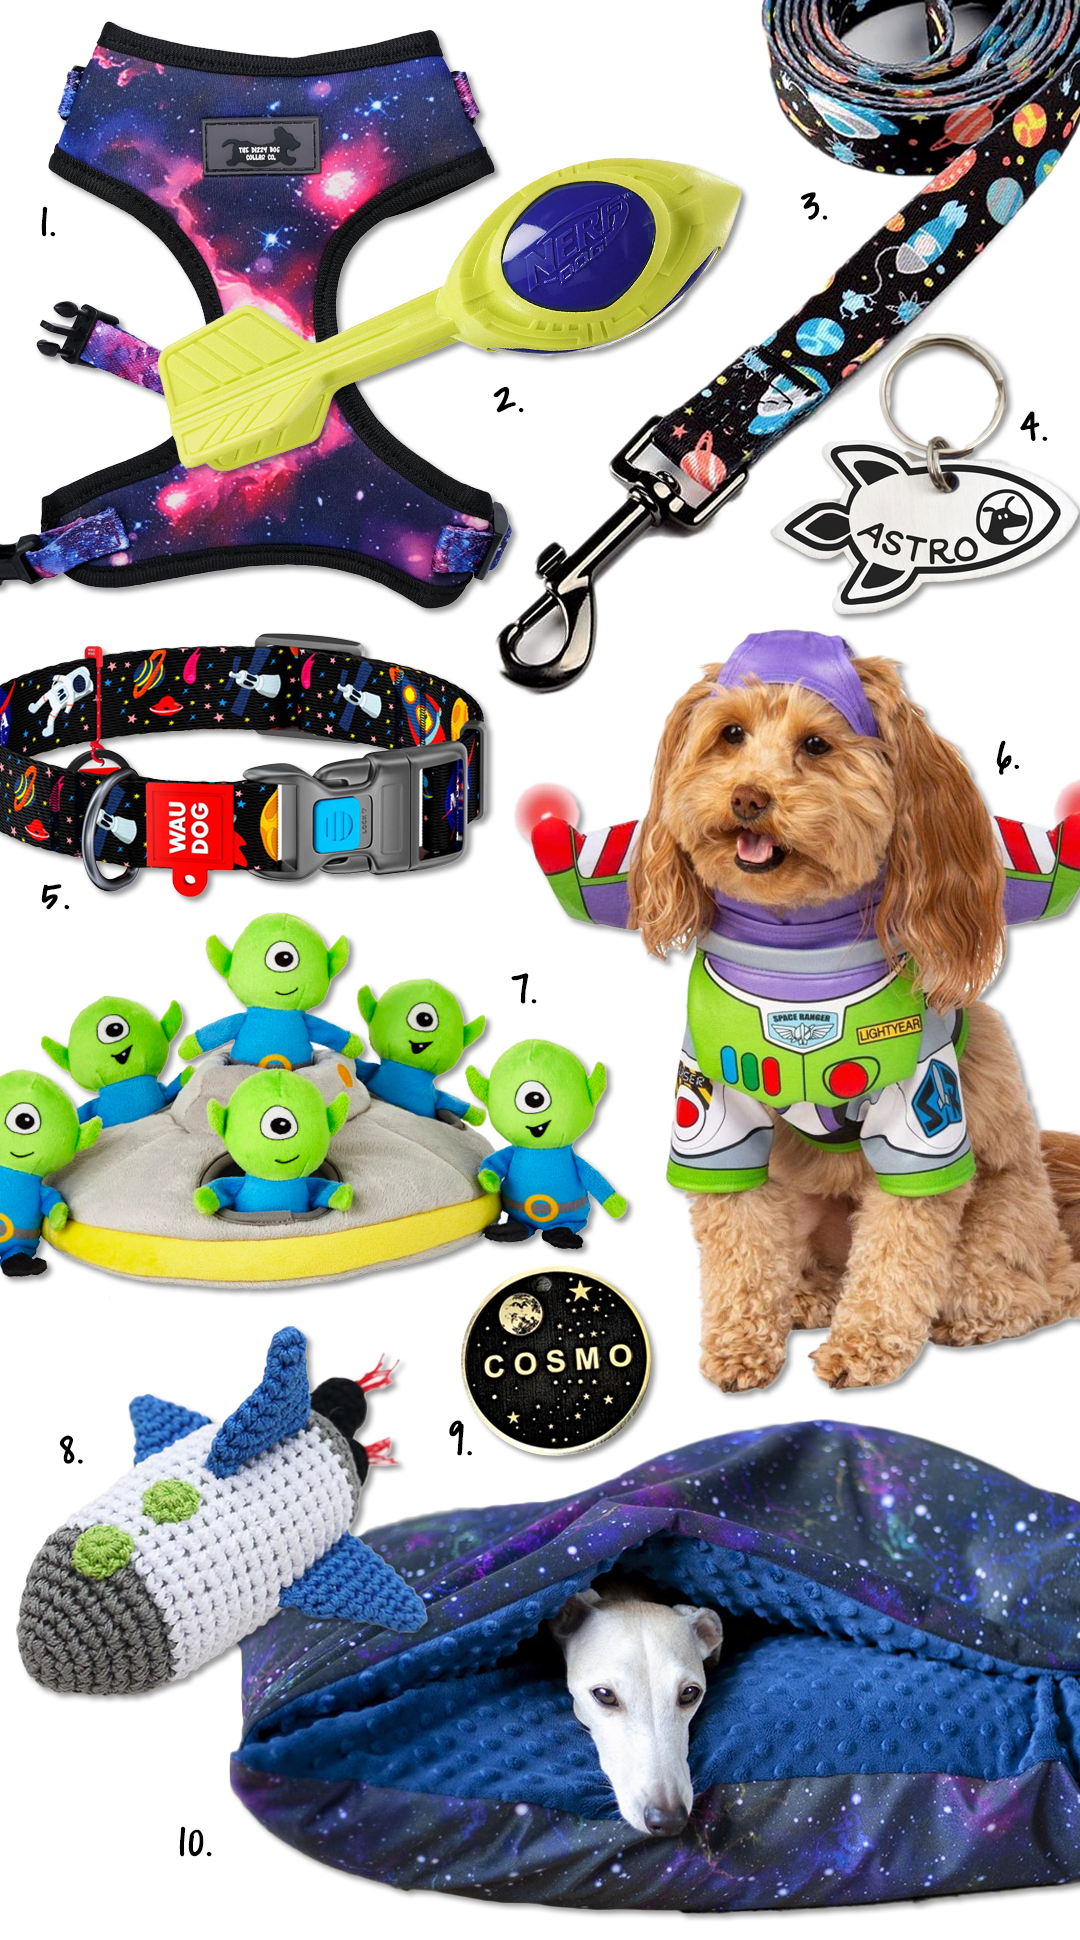 135 Space and Astronomy Inspired Dog Names + Dog Accessories - Hey, Djangles.